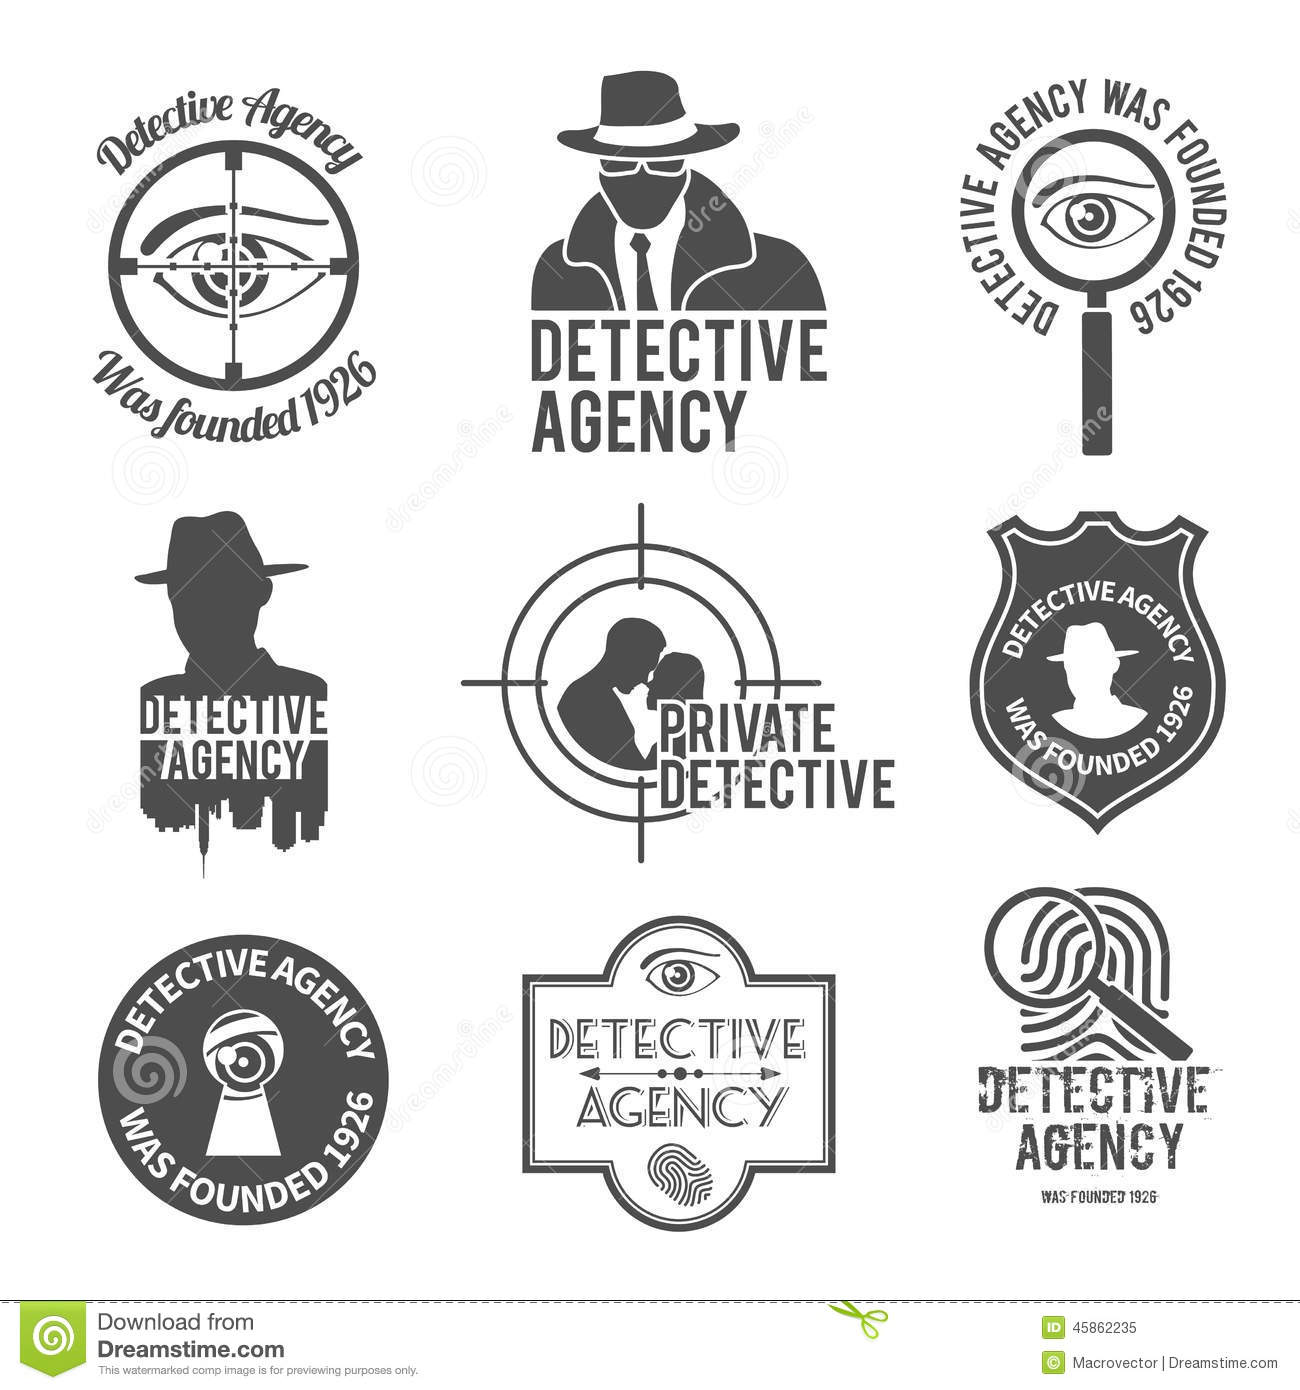 Private Detective Agency Royalty-Free Stock Image